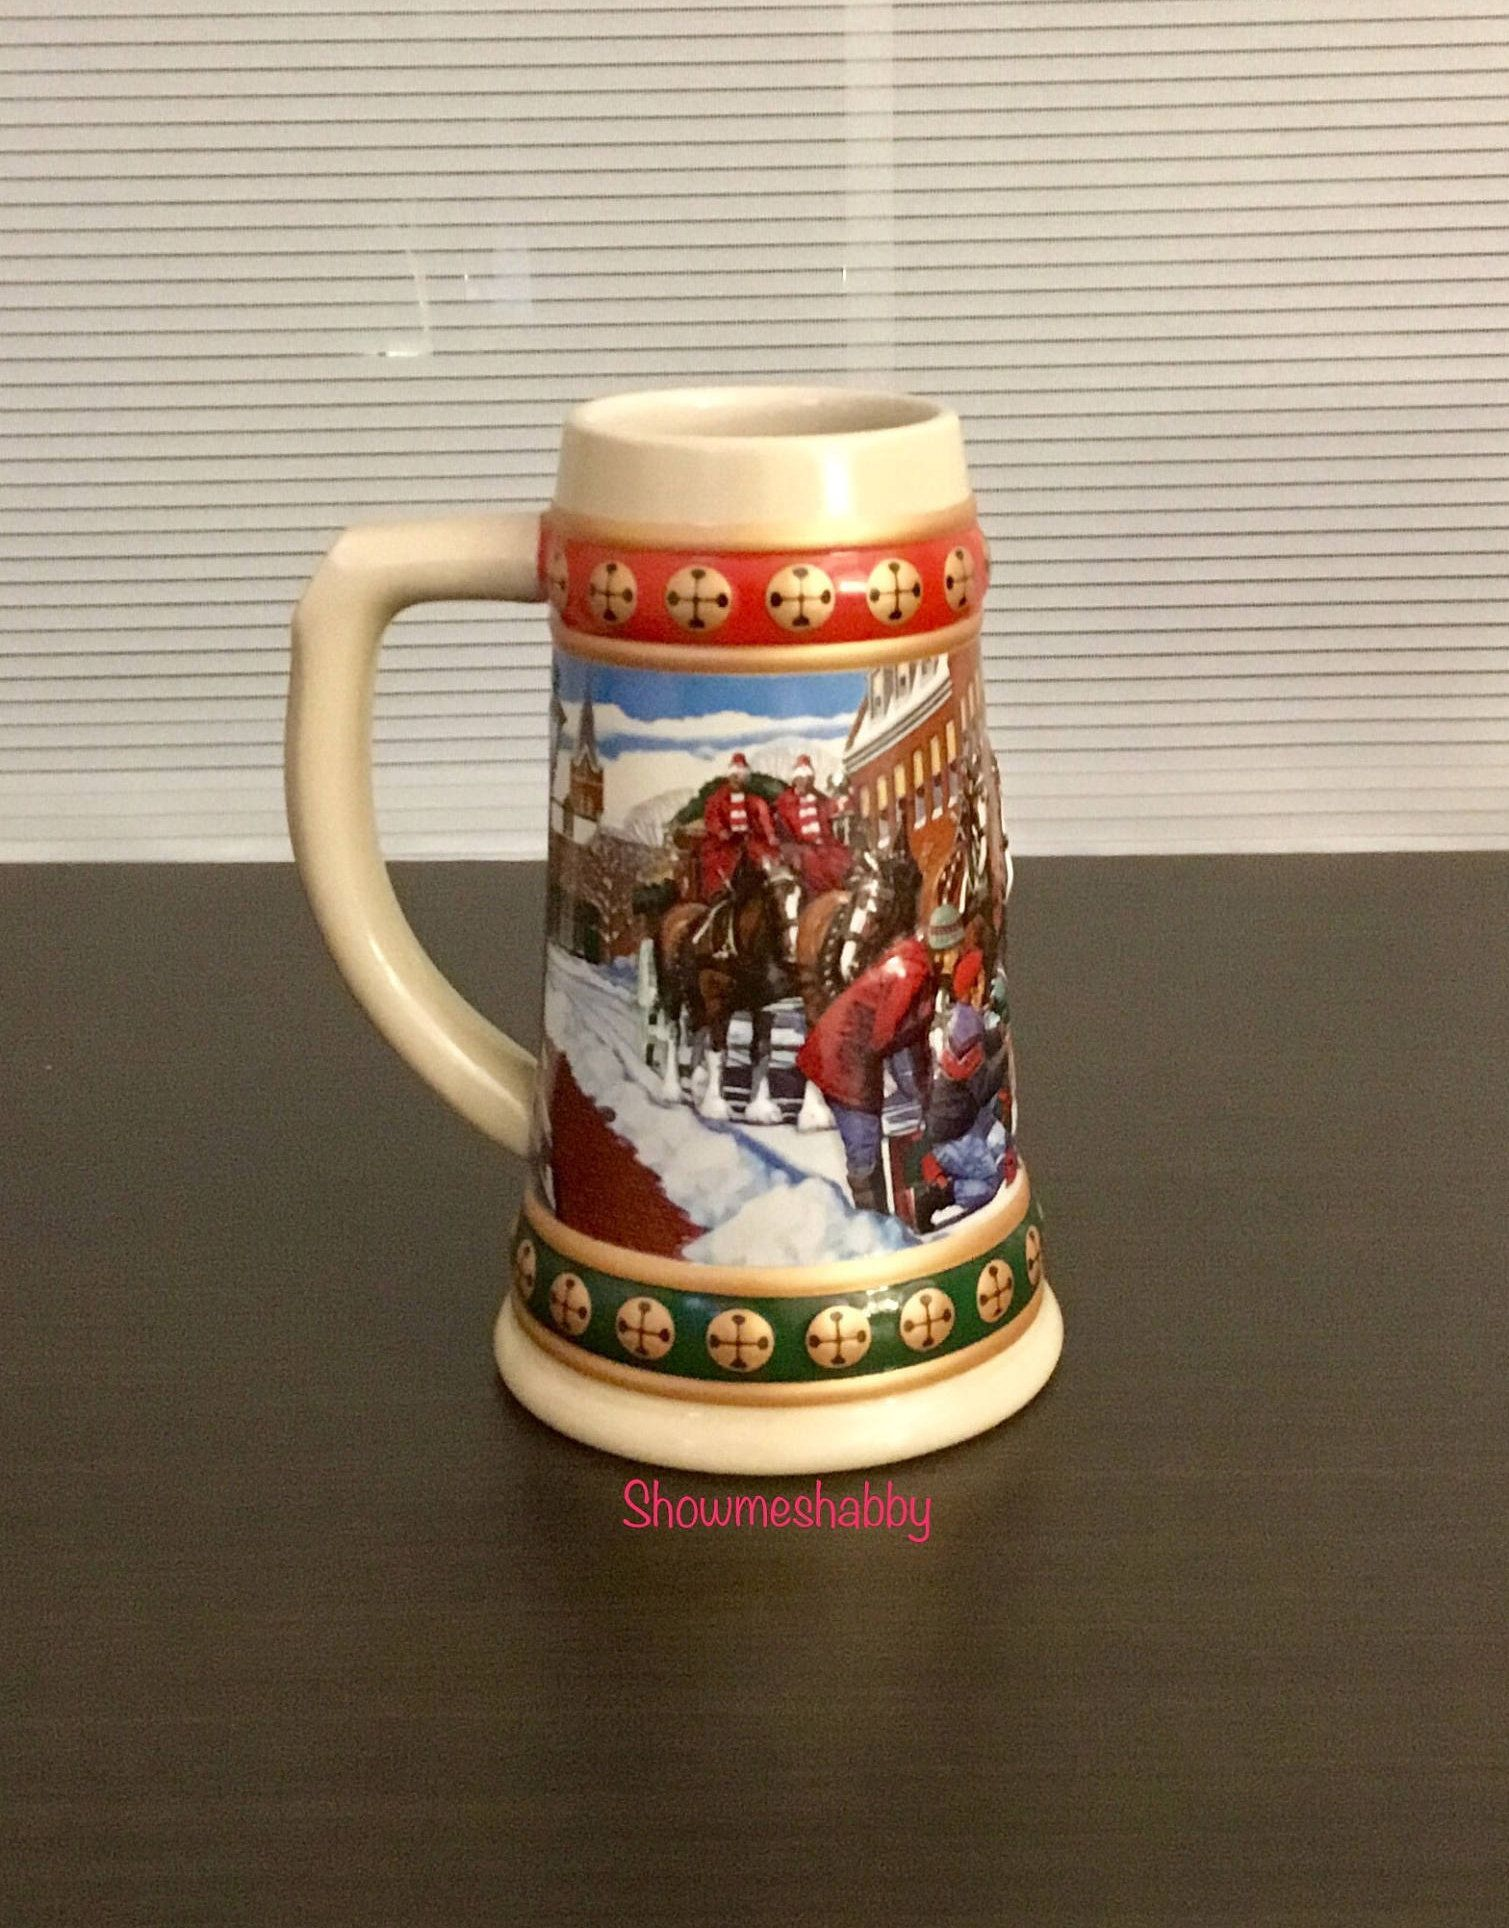 hometown holiday anheuser busch budweiser bud light christmas stein 1993 beer mug collectors glass drink cup collectible holiday stein by showmeshabby - Budweiser Christmas Steins